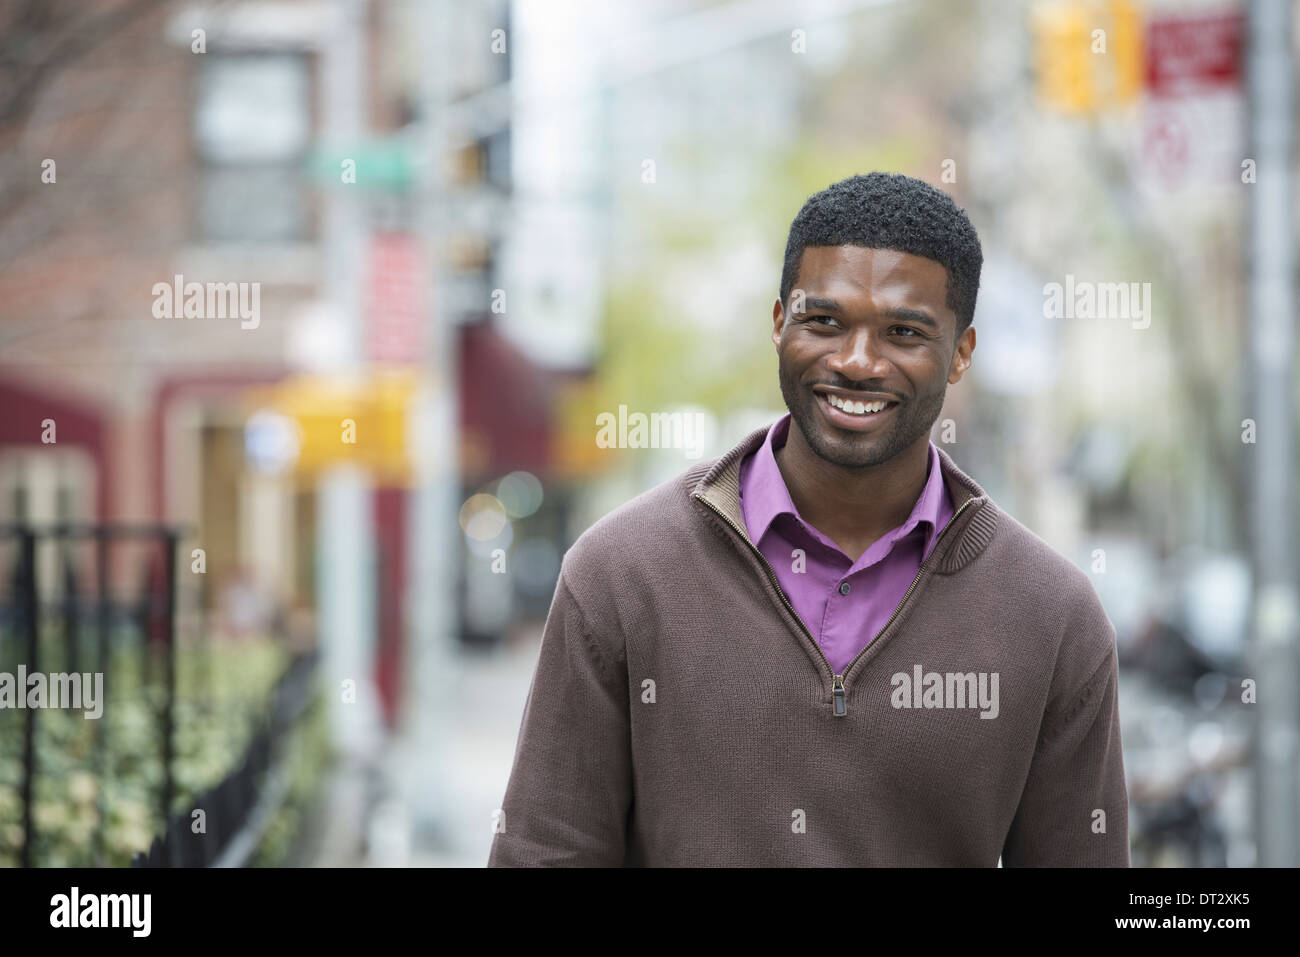 A young man wearing a purple shirt and jersey smiling - Stock Image